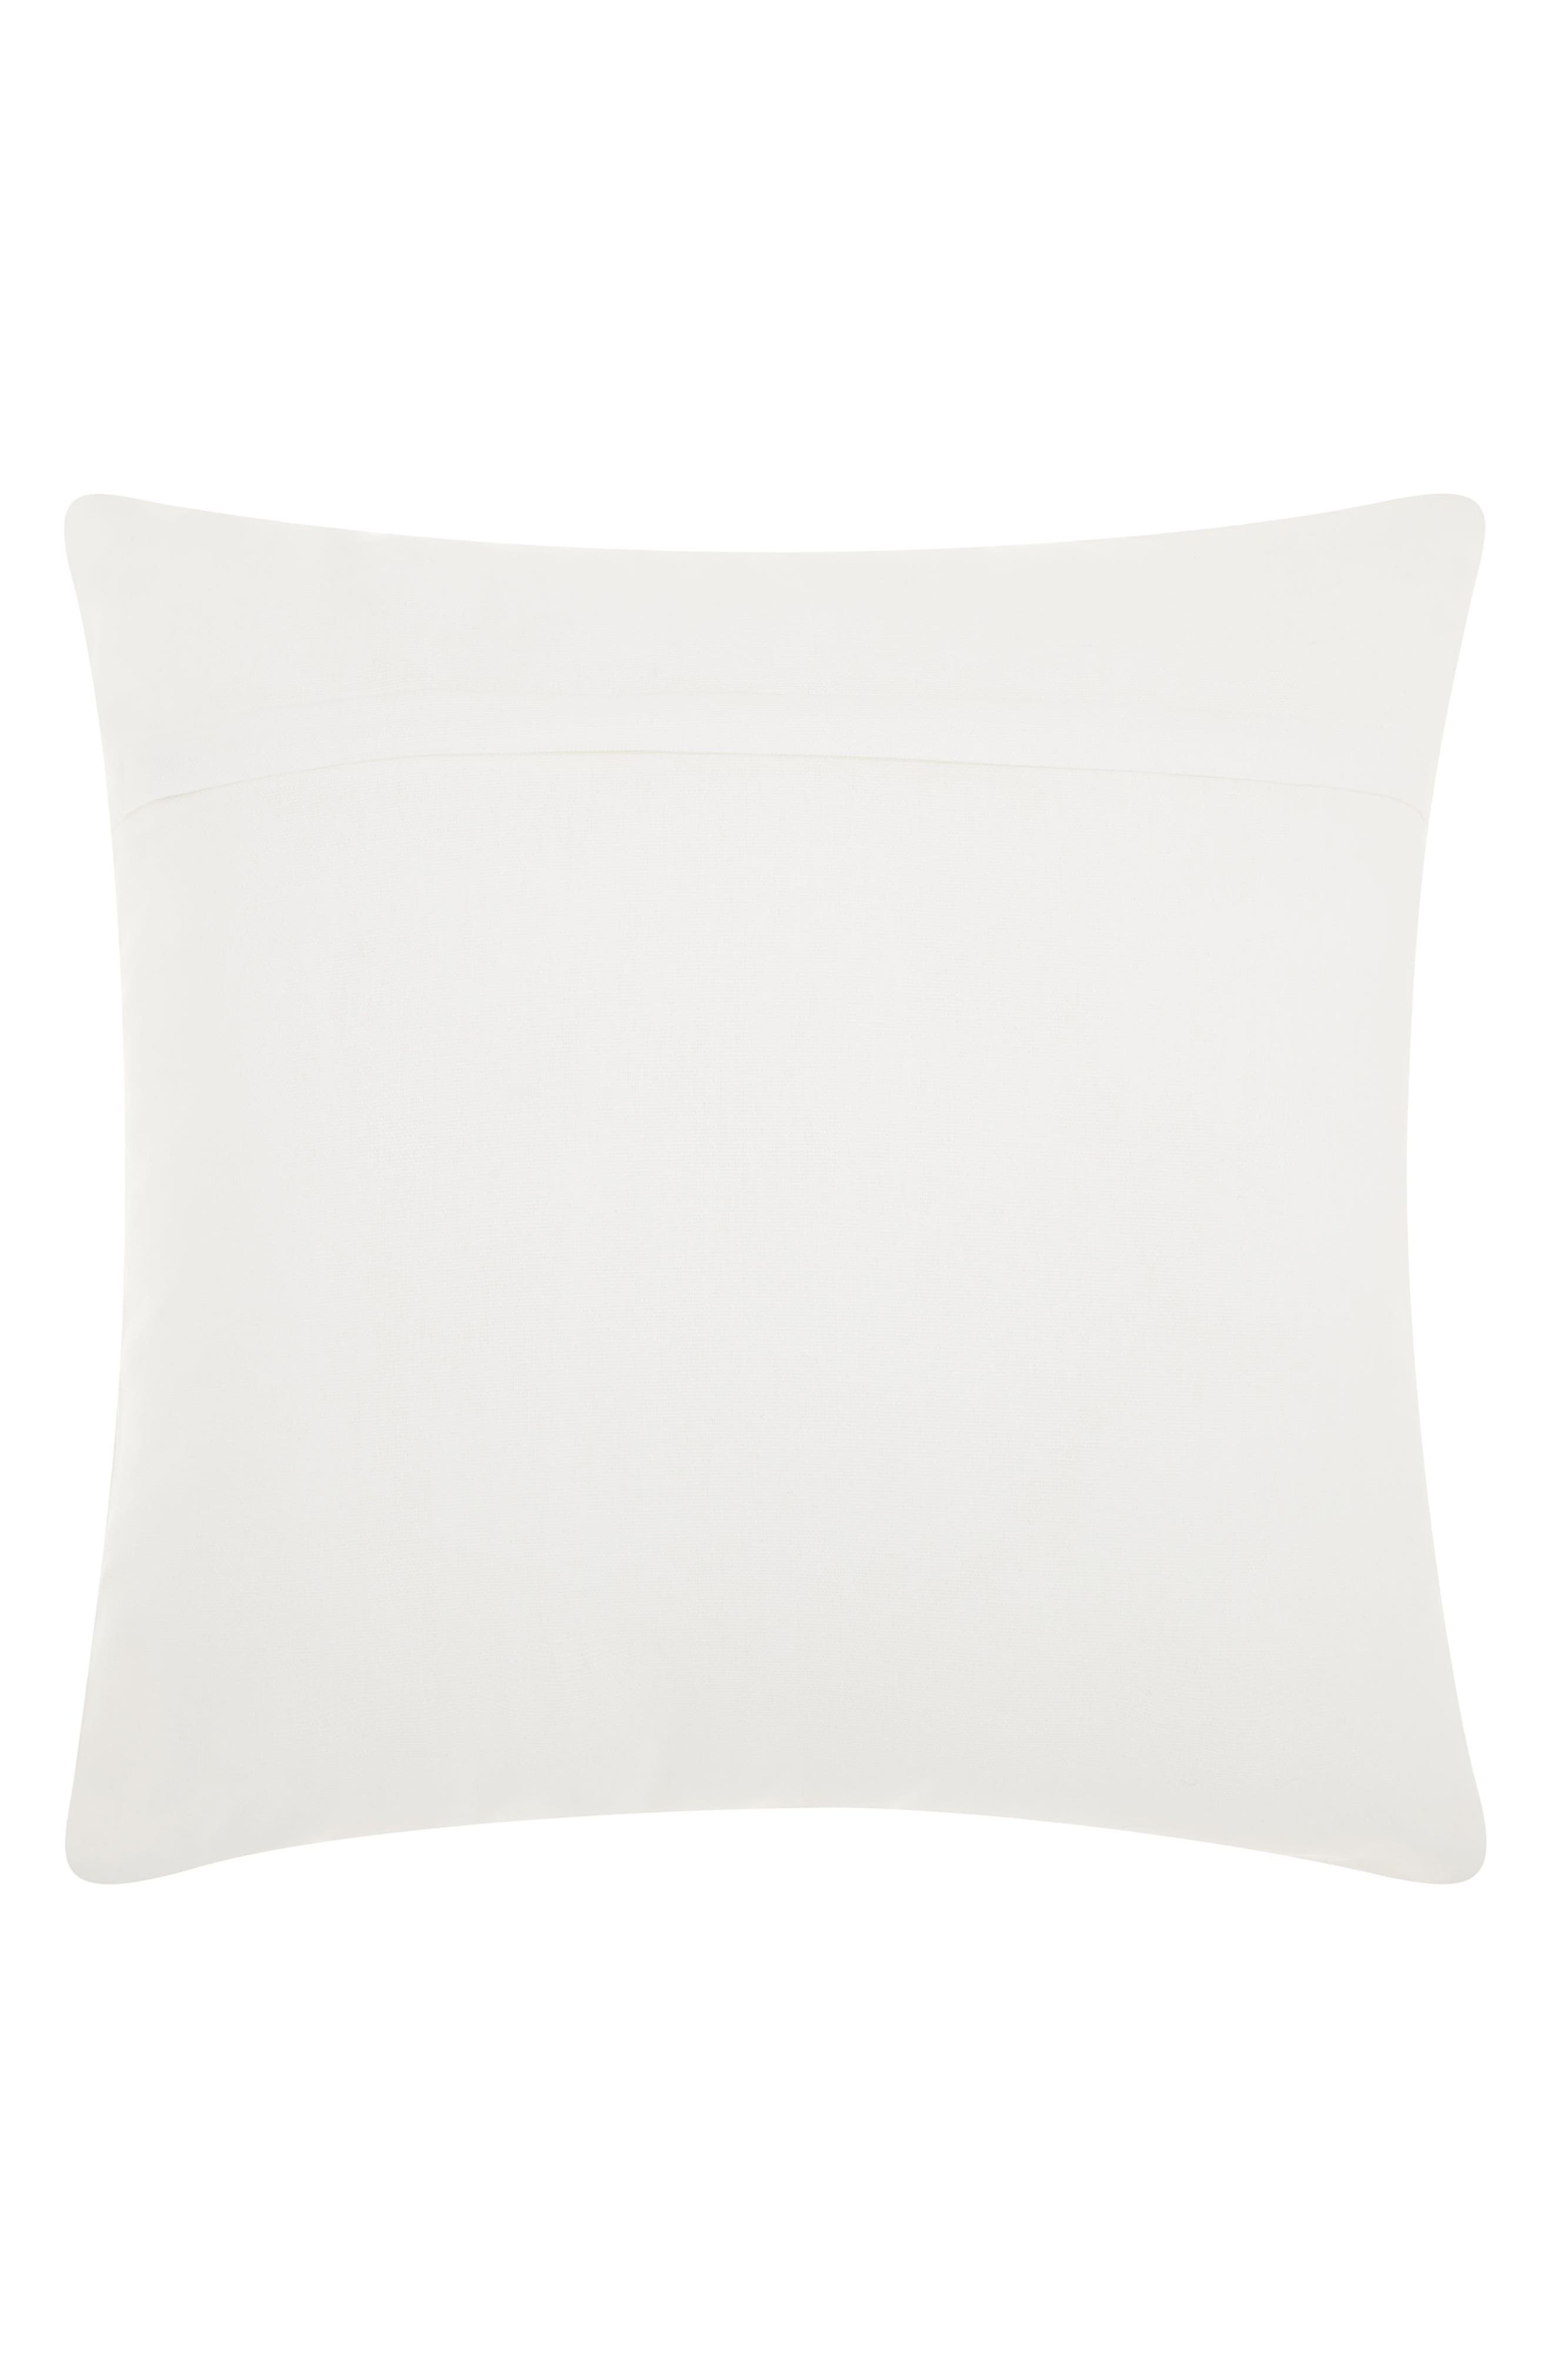 Sequin Bunny Ears Accent Pillow,                             Alternate thumbnail 2, color,                             WHITE